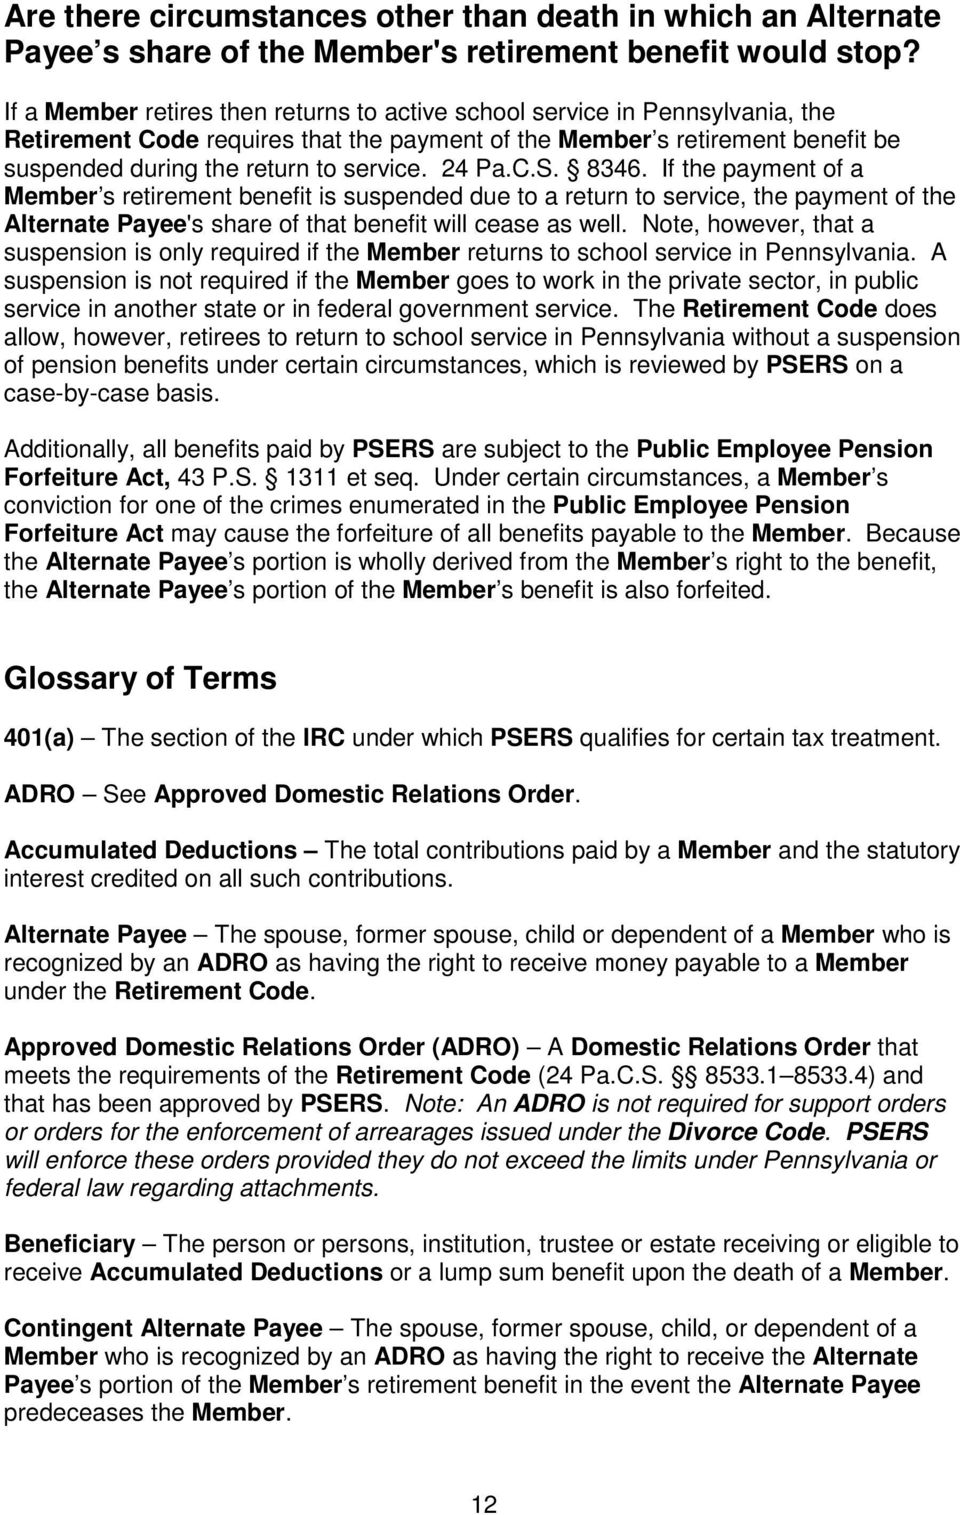 24 Pa.C.S. 8346. If the payment of a Member s retirement benefit is suspended due to a return to service, the payment of the Alternate Payee's share of that benefit will cease as well.